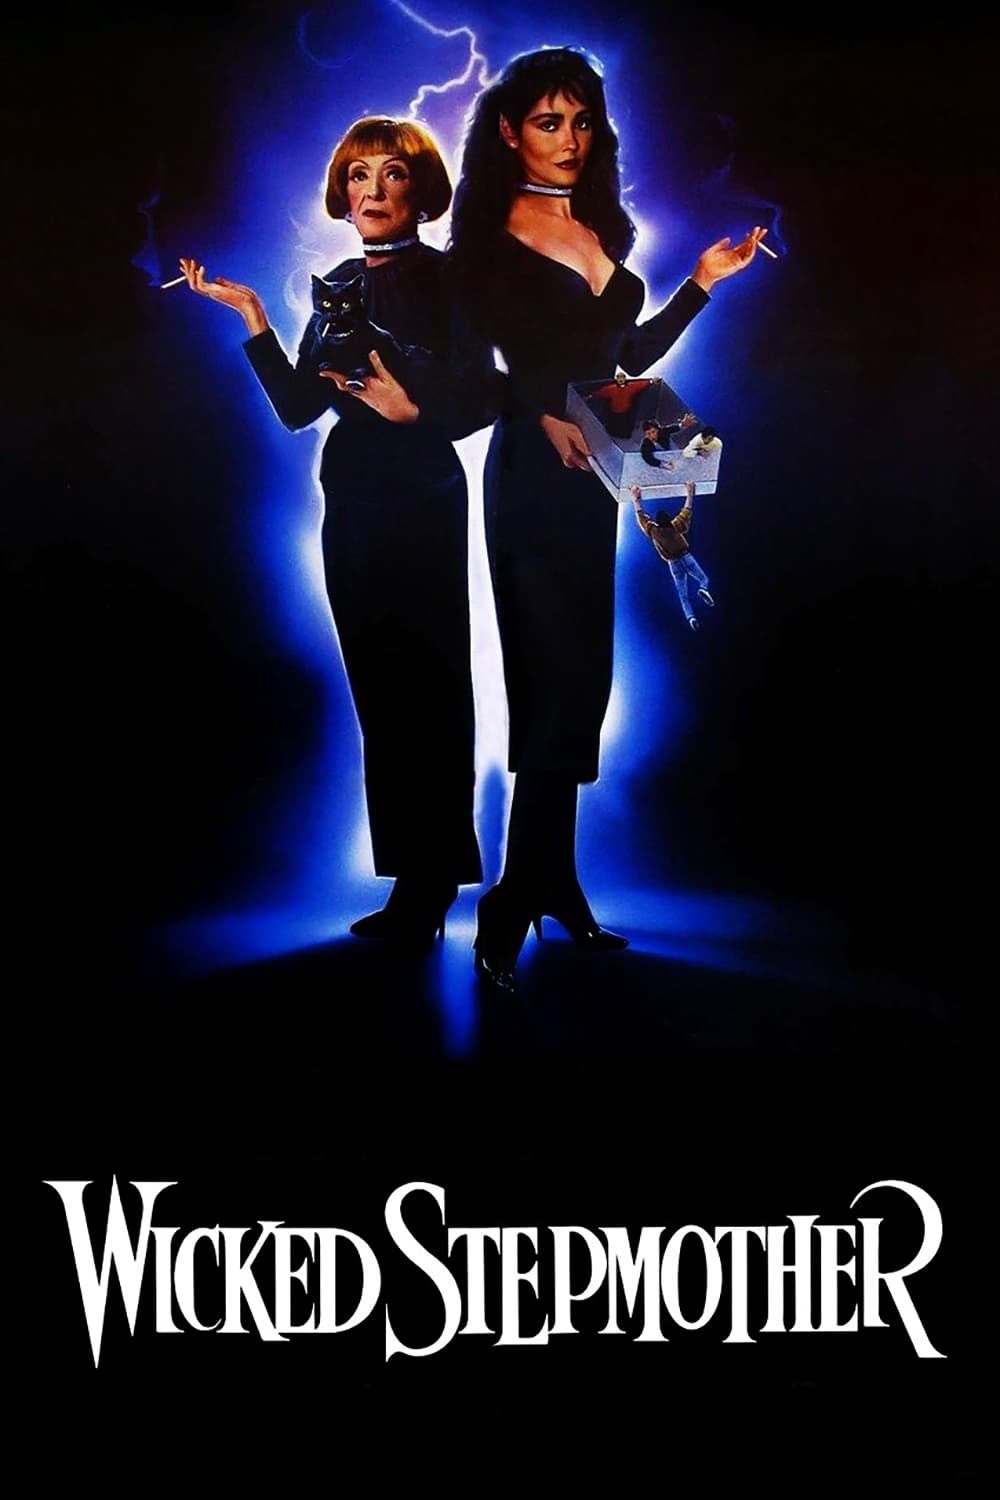 Wicked Stepmother (1989)